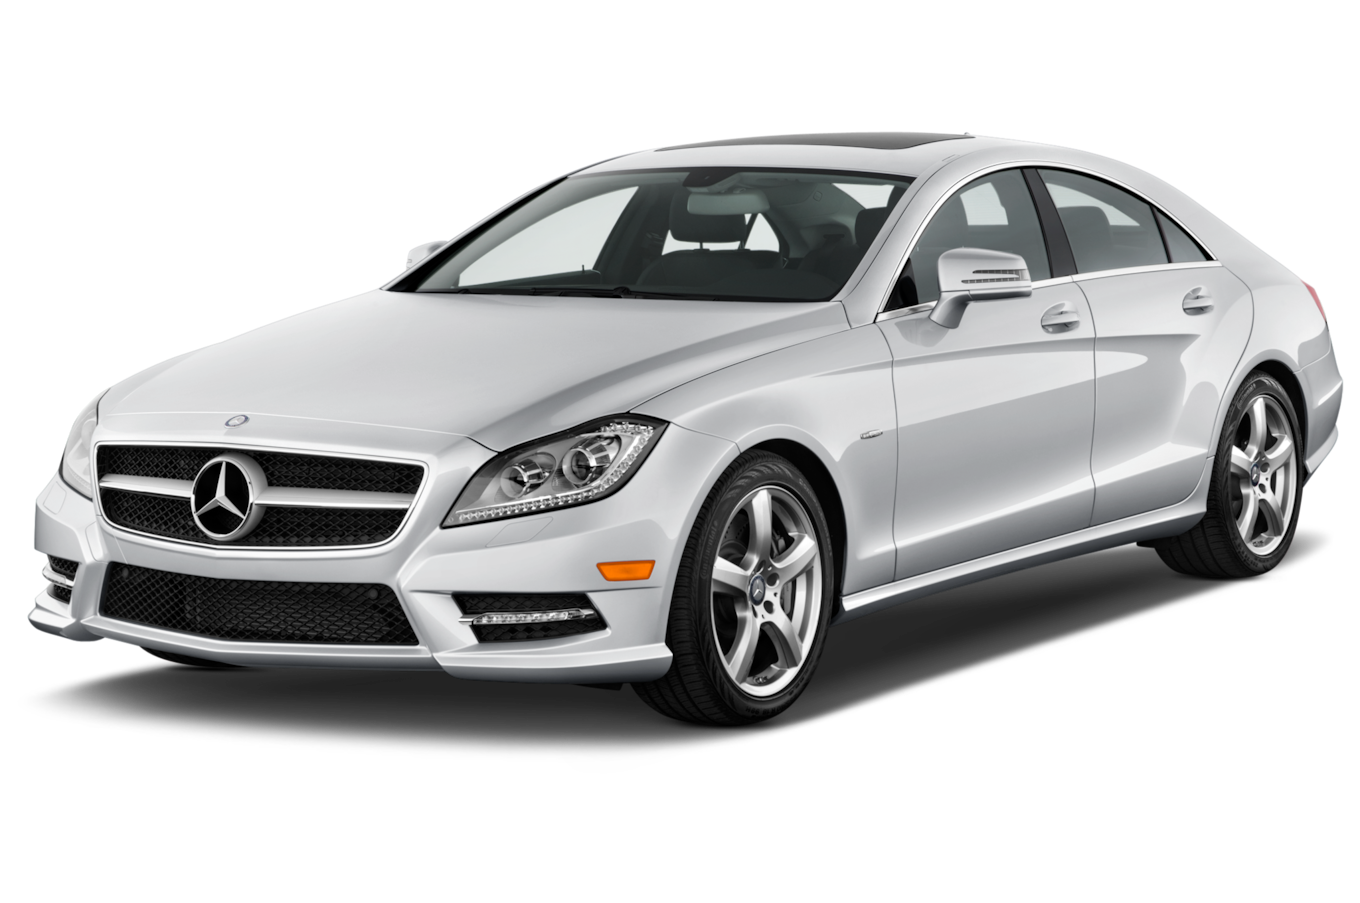 2014 Mercedes-Benz CLS-Class Reviews and Rating | Motor Trend